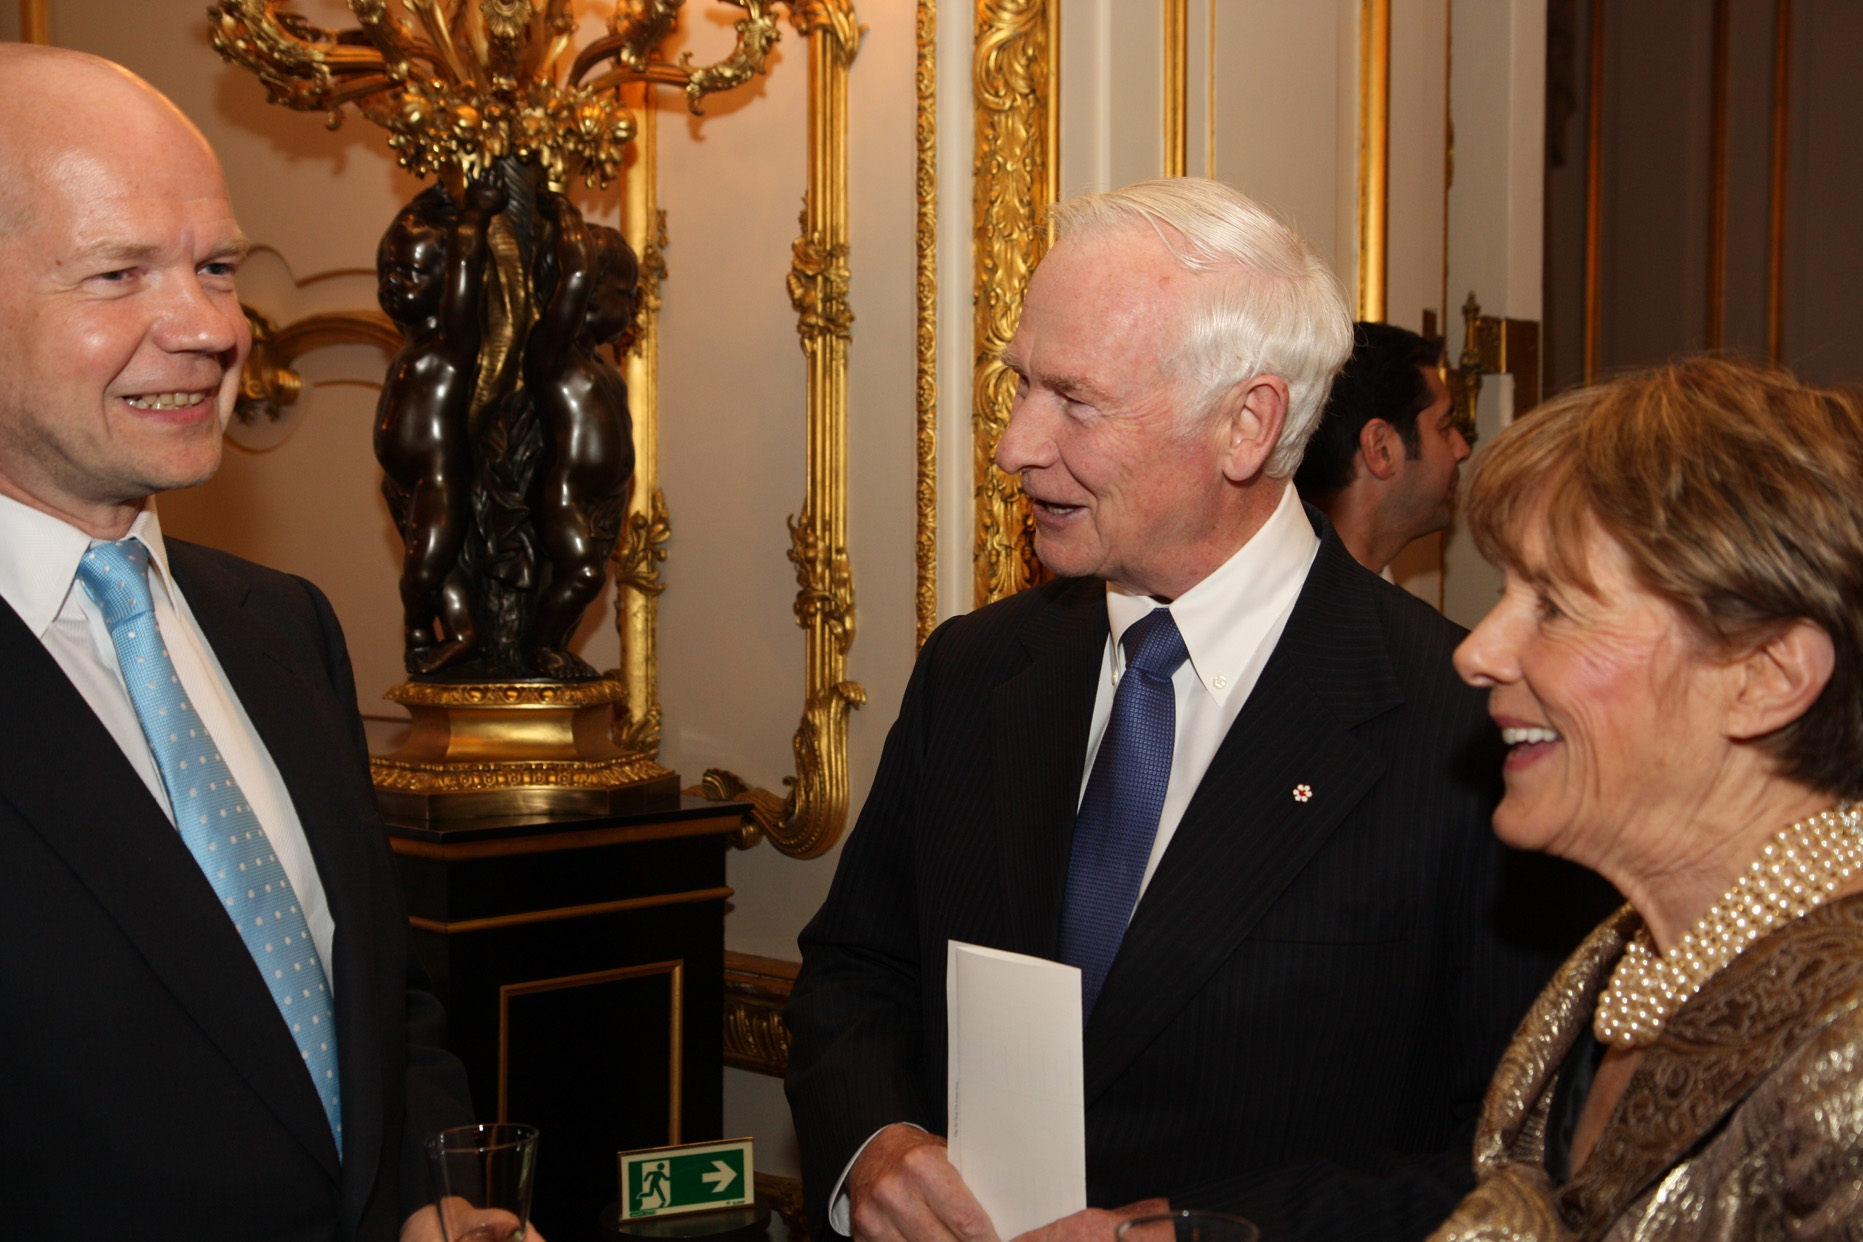 On April 28, 2011, the Governor General and his wife Her Excellency Sharon Johnston attended the reception and dinner hosted by the Secretary of State for Foreign and Commonwealth Affairs the Right Honourable William Hague and his wife Mrs. Ffion Hague.